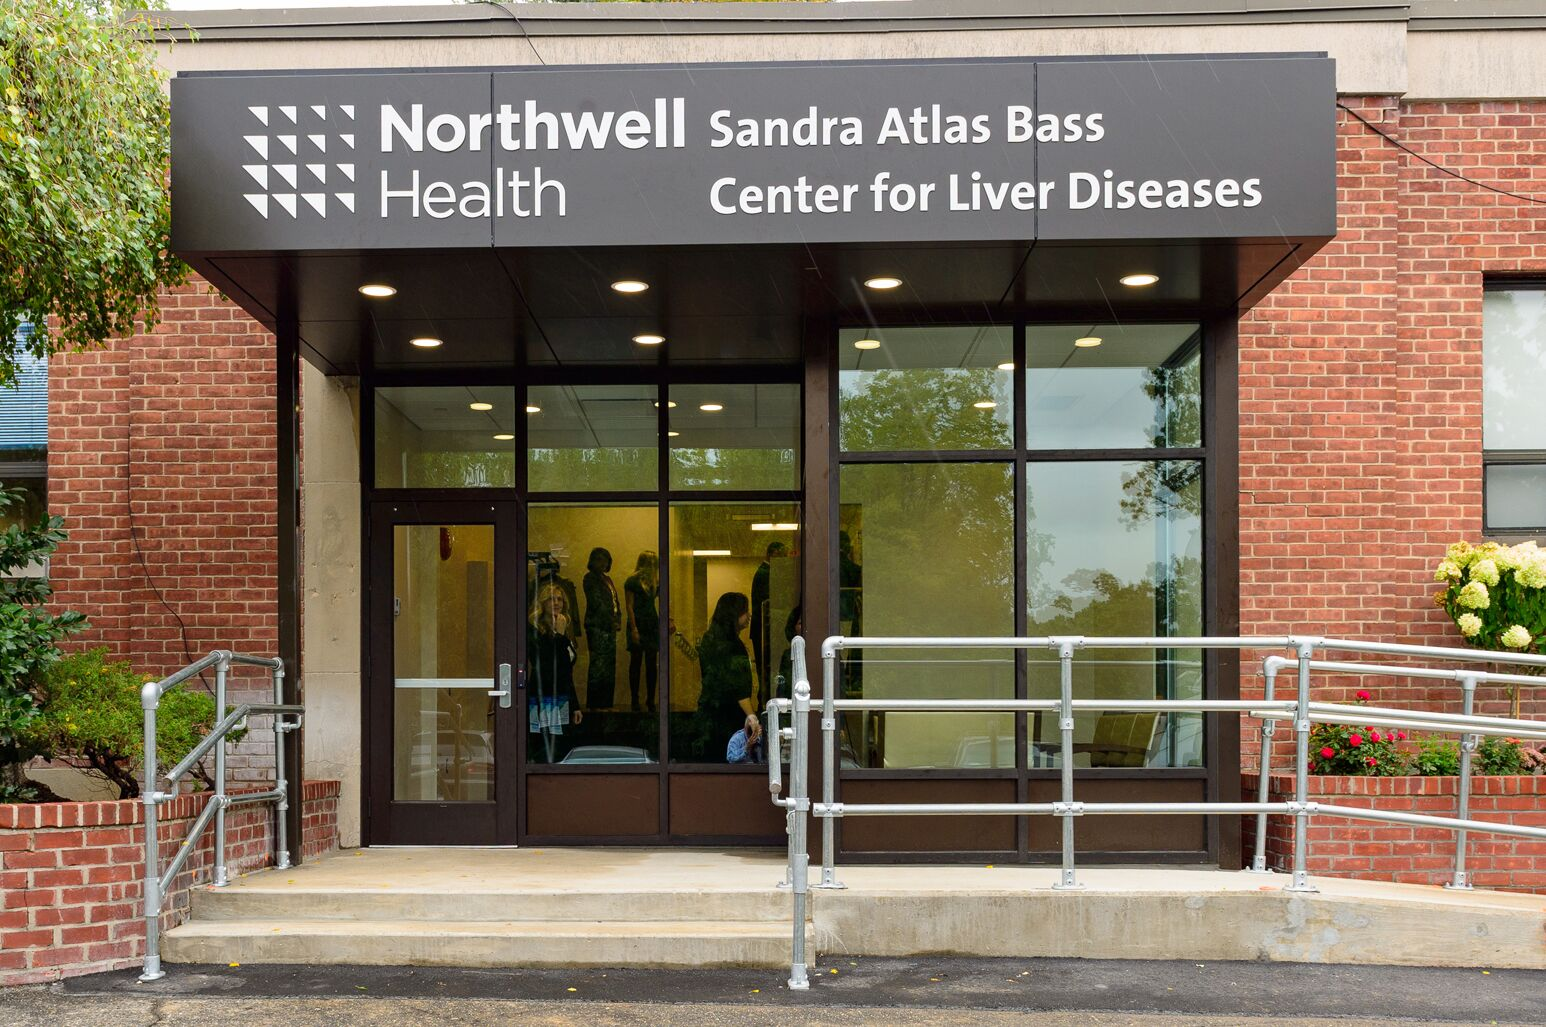 Outside the Sandra Atlas Bass Center for Liver Diseases